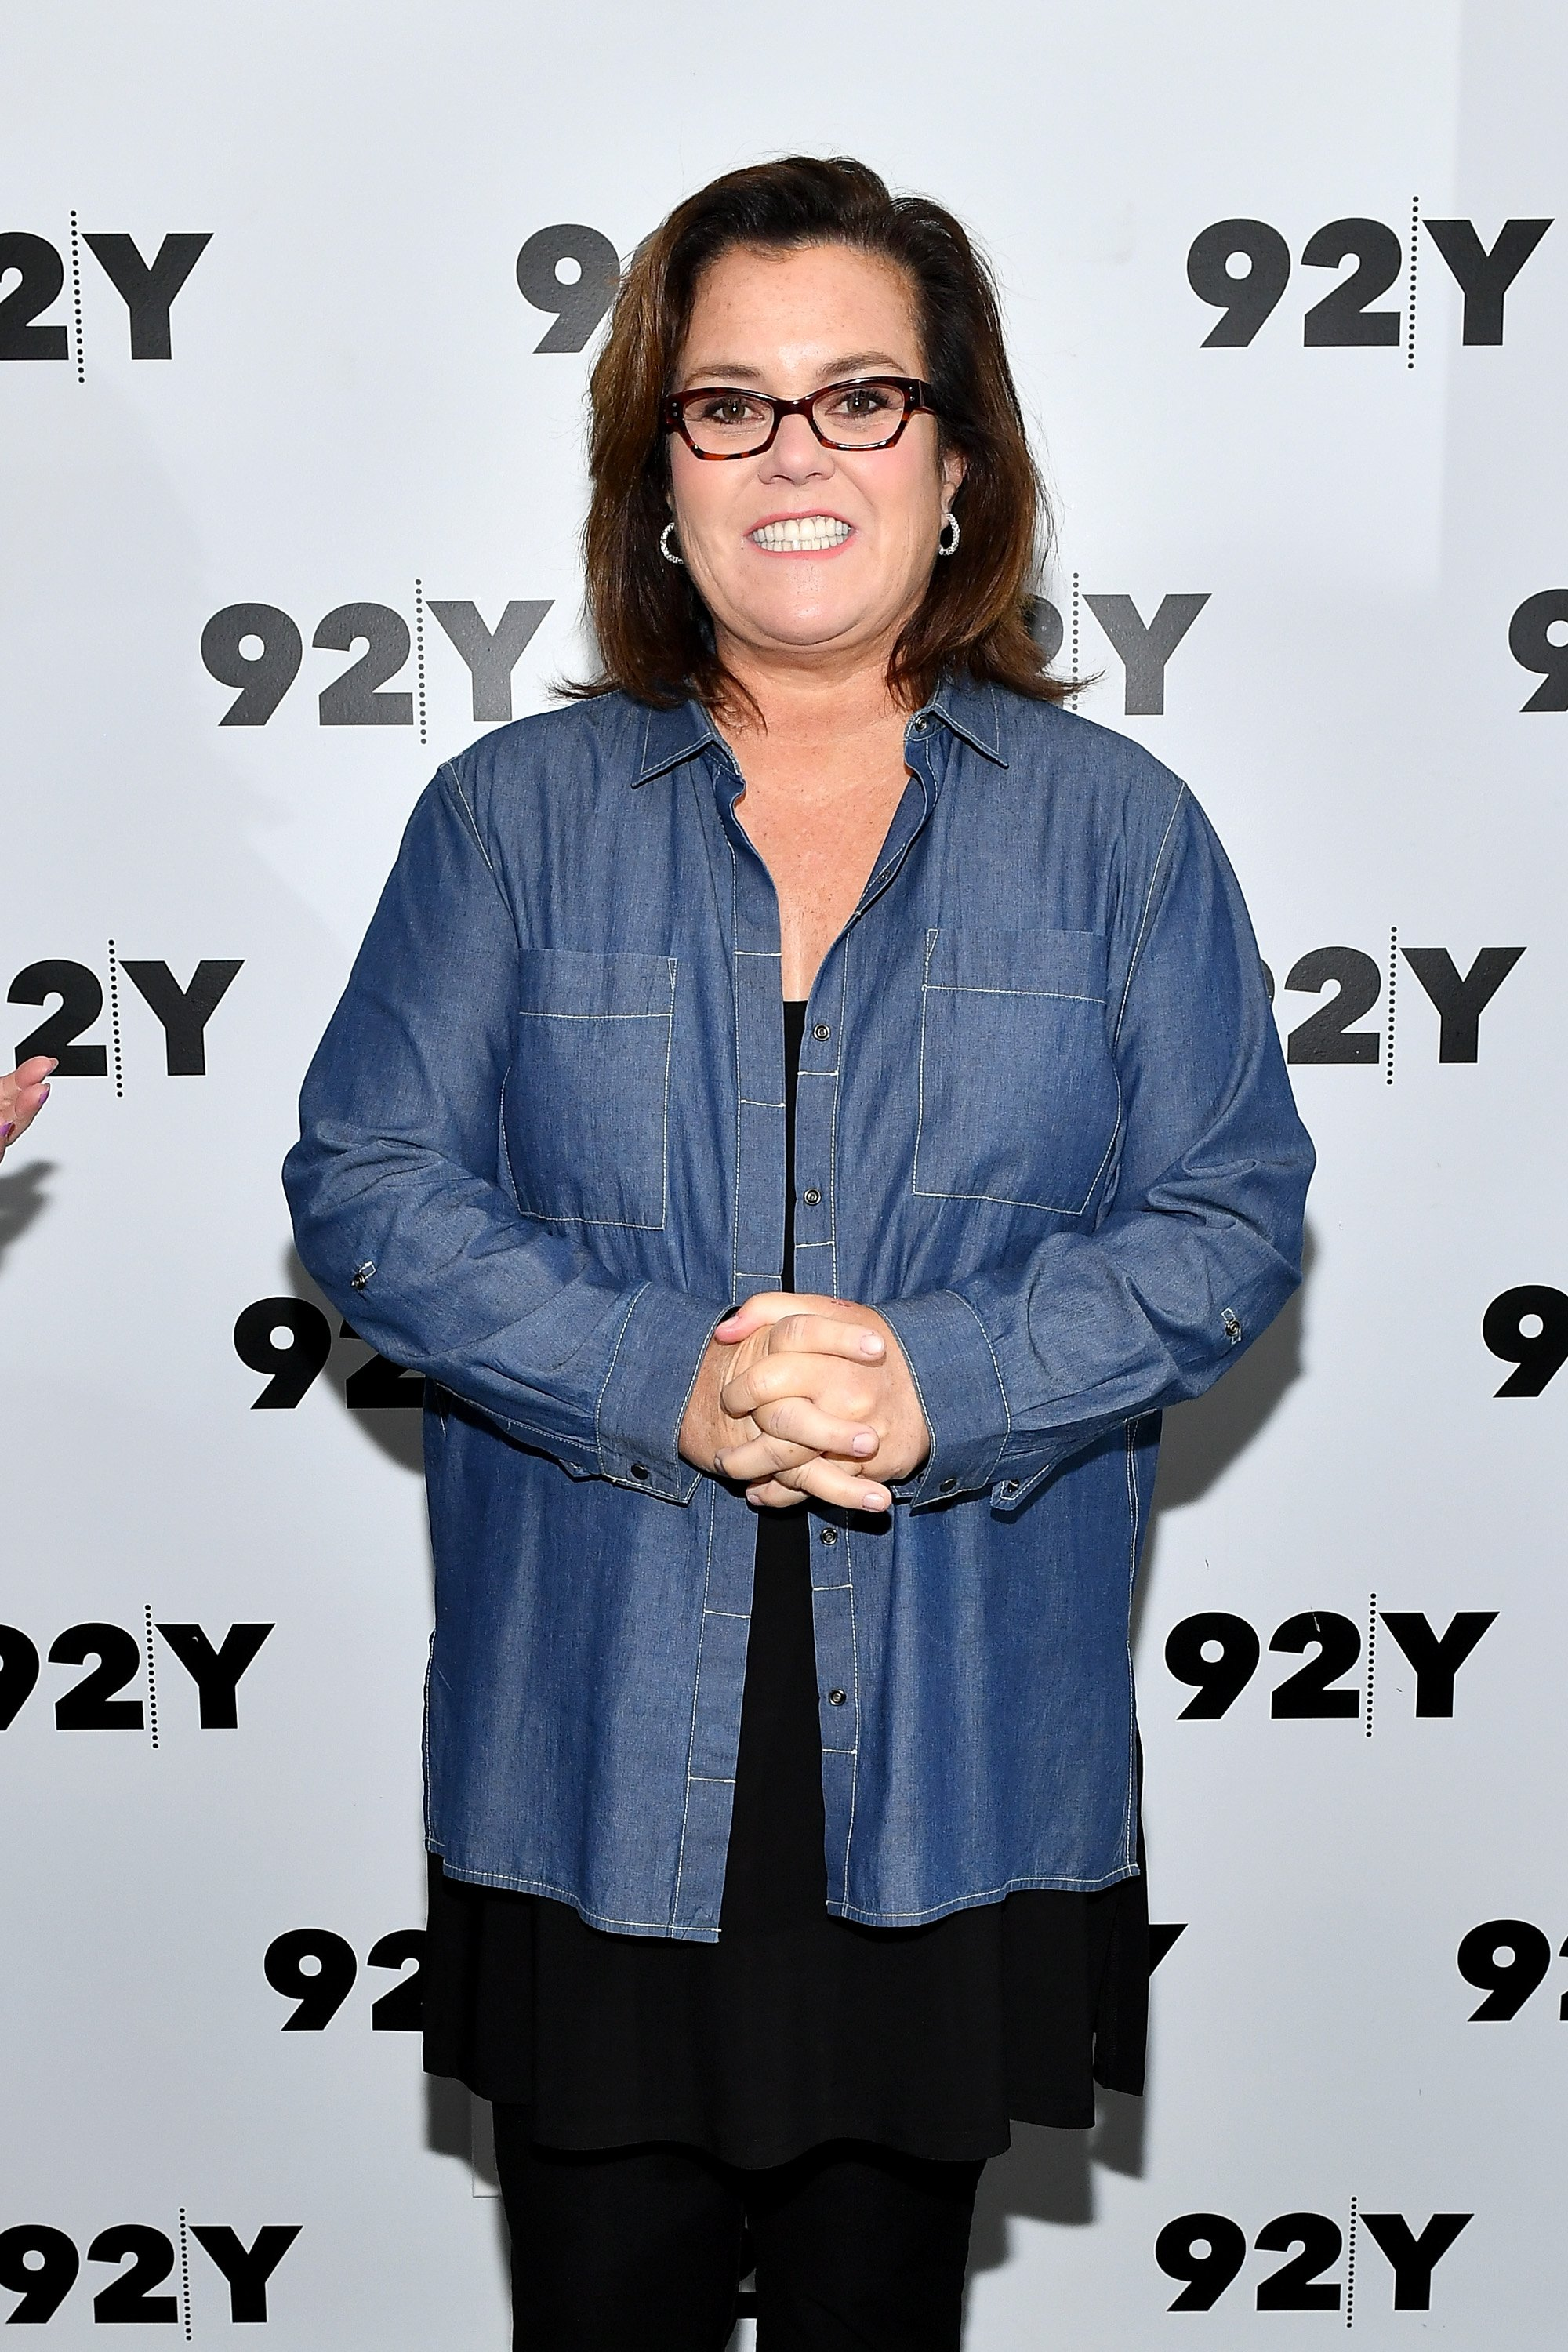 Rosie O'Donnell, actress and activist | Photo: Getty Images